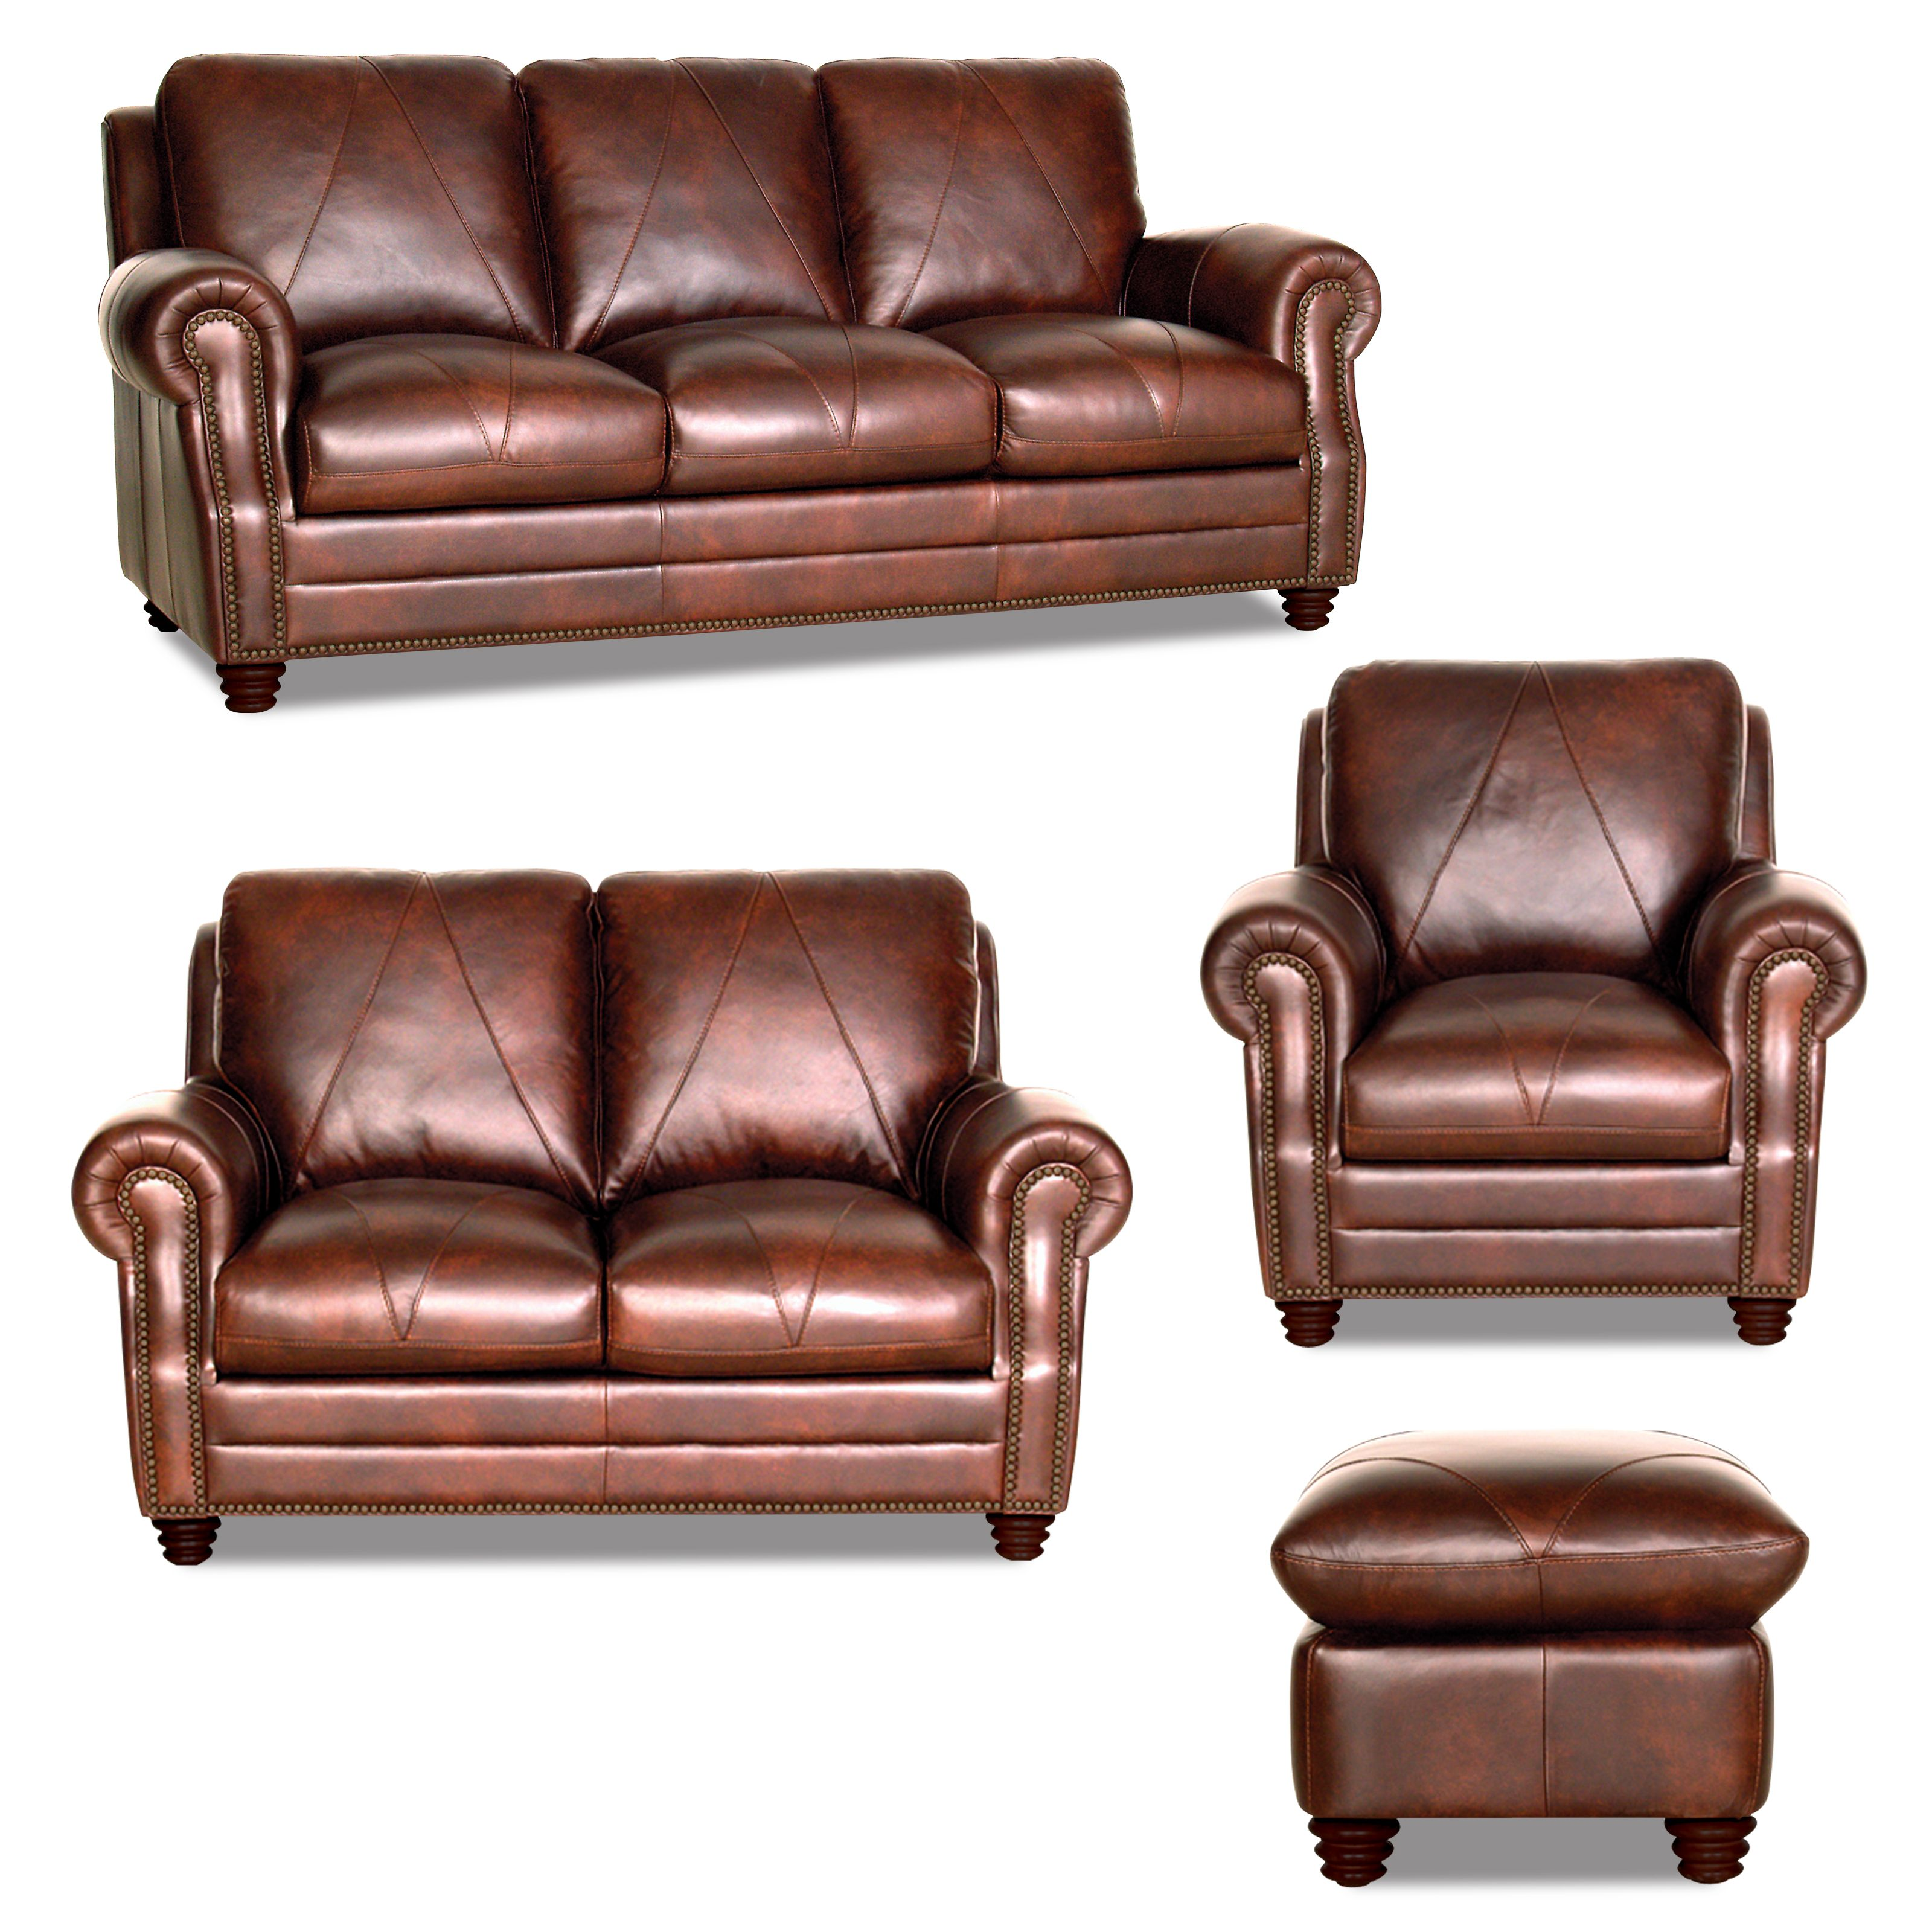 Soloman 4 Piece collection Chocolate Brown leather with diamond